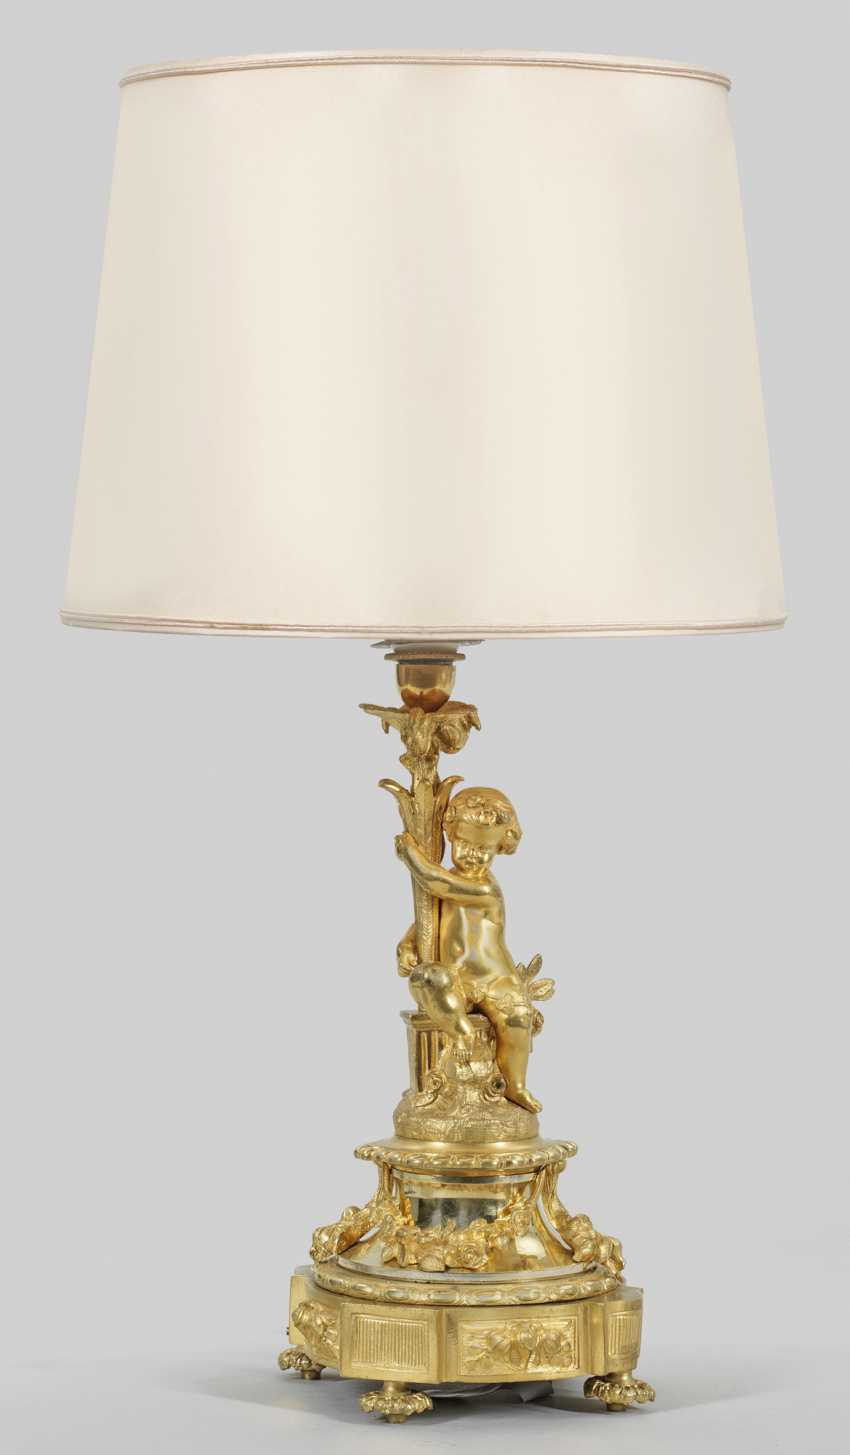 Belle Epoque table lamp by Henri Picard - photo 1